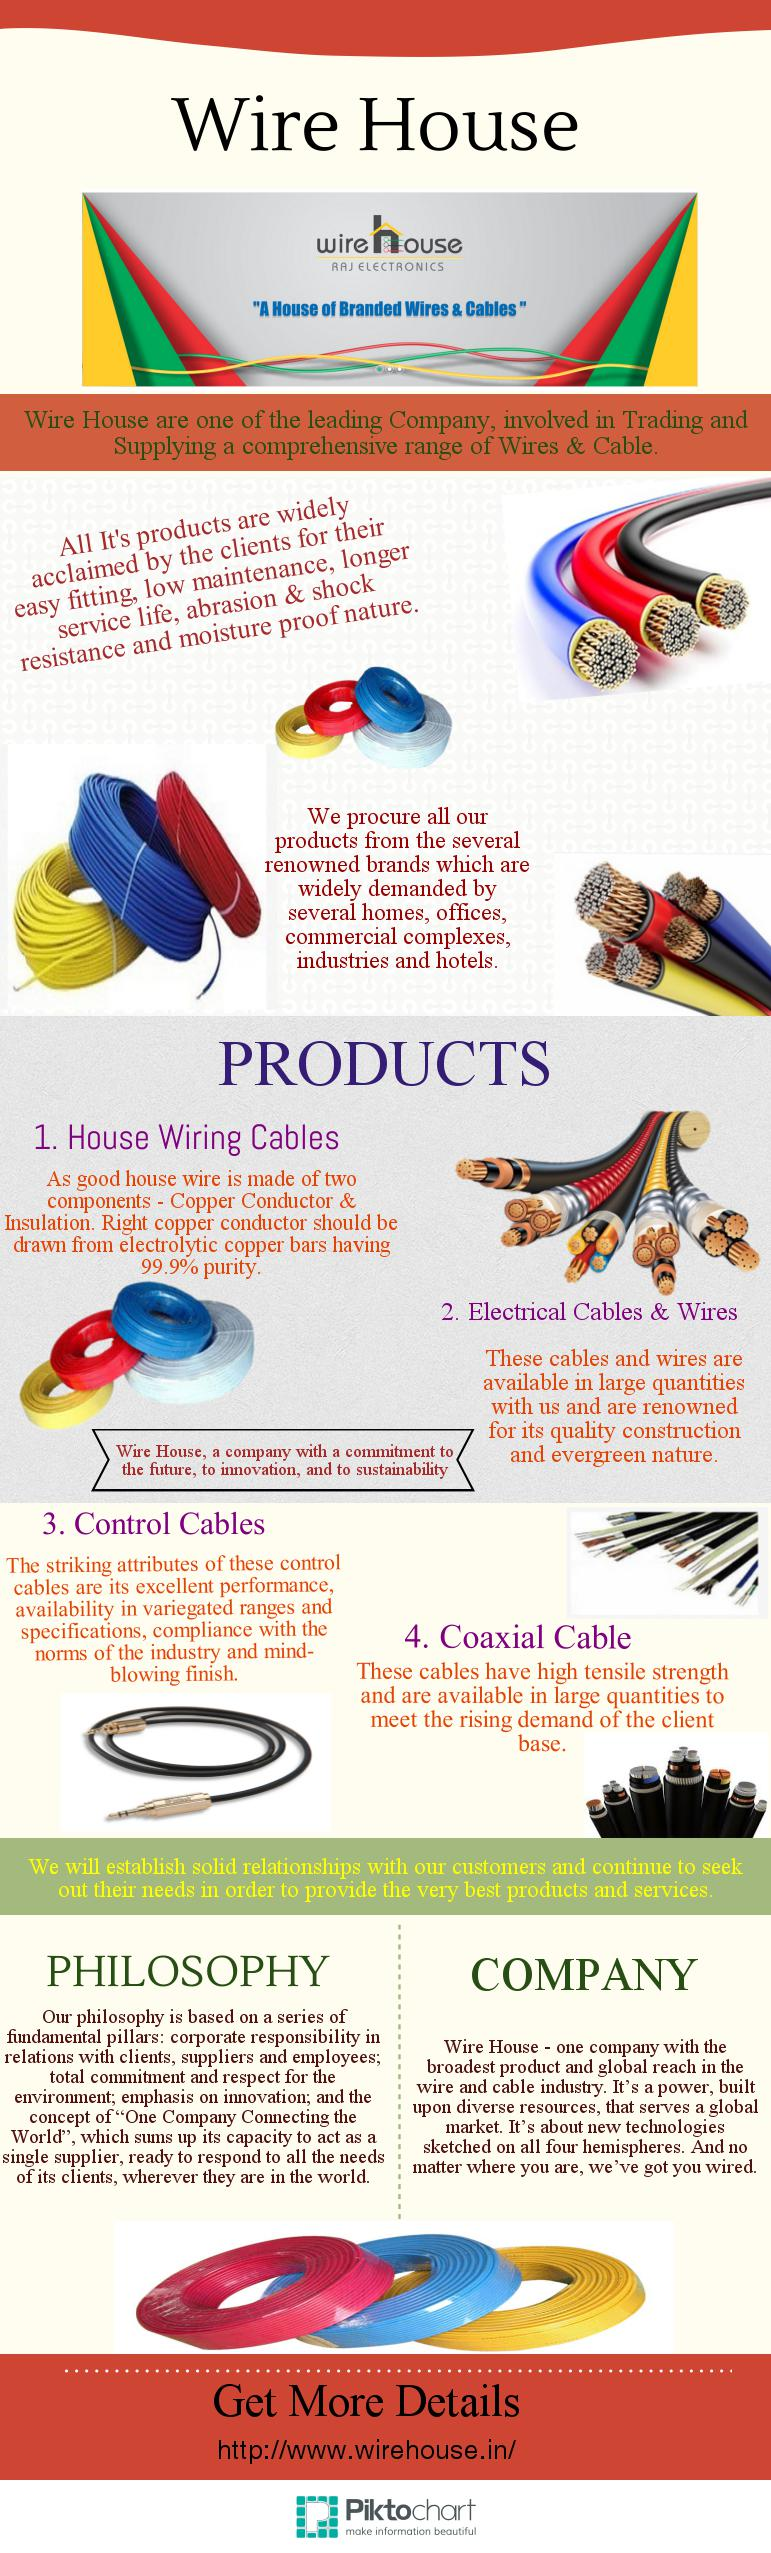 hight resolution of  wirehouse store deals in all types of electrical wires and cables domestic and